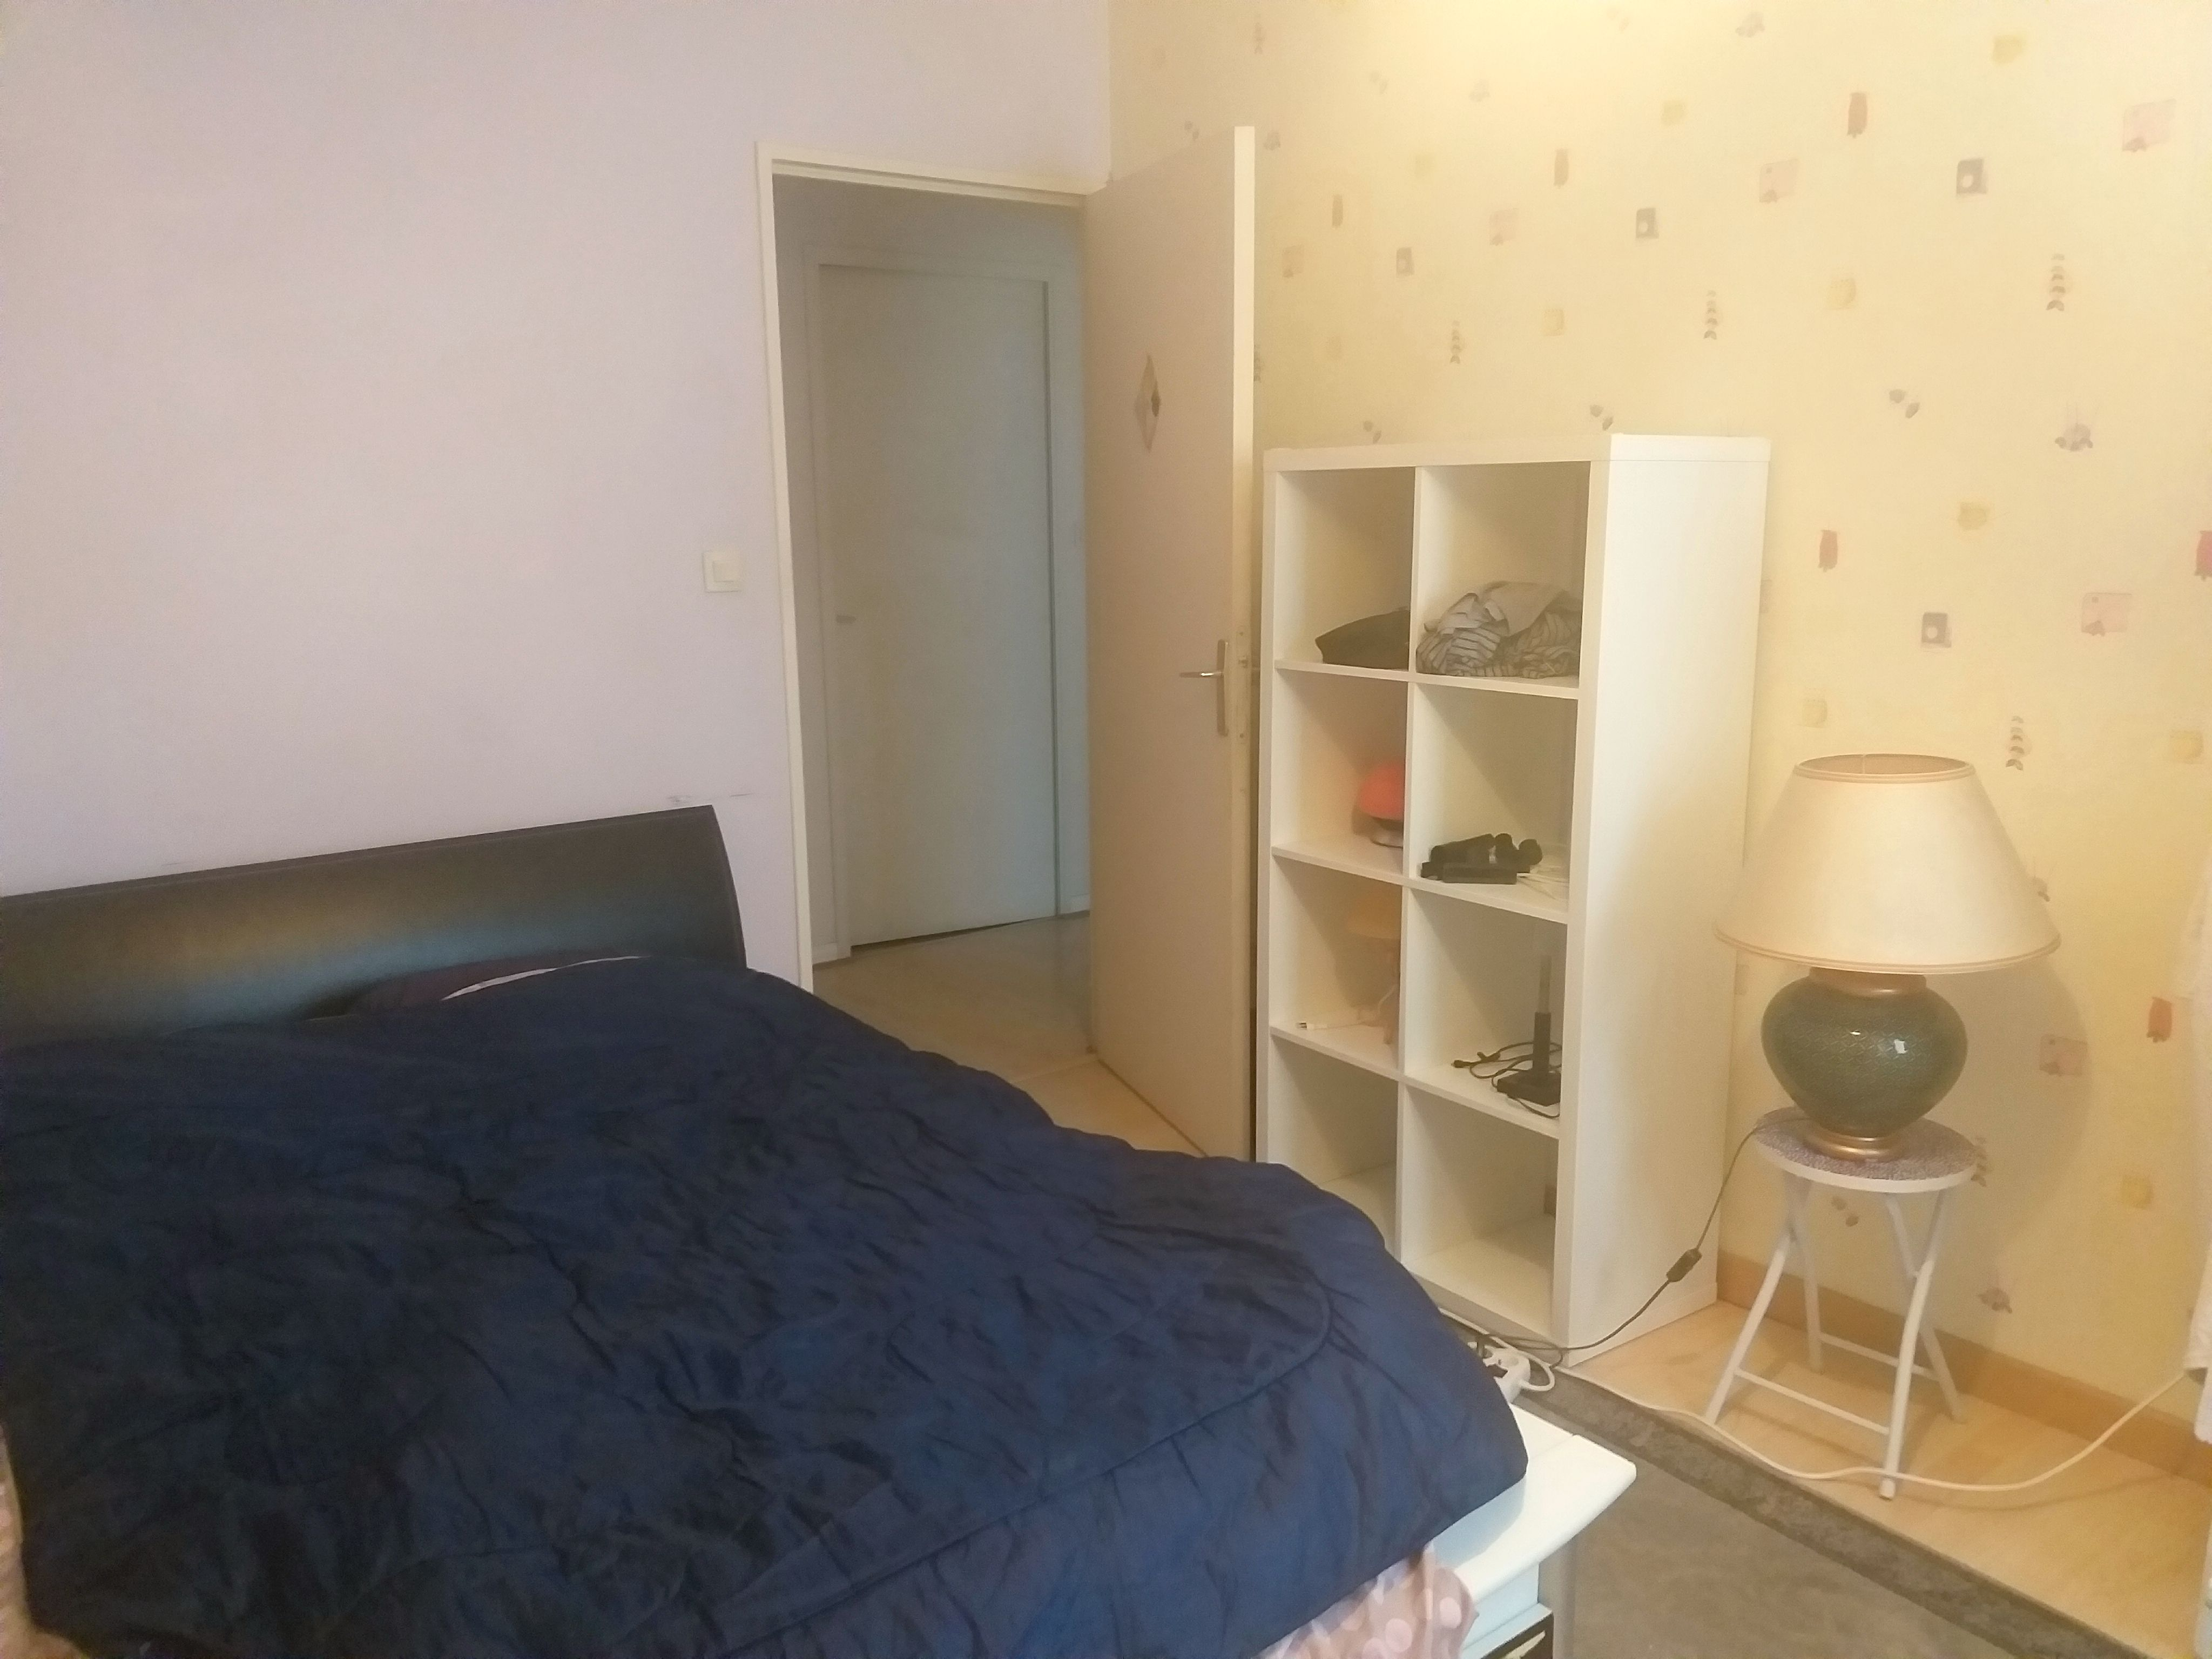 Colocation Montpellier NA & Location Chambre à louer Montpellier NA | Loue chambre meublée Montpellier NA | Logement Montpellier NA